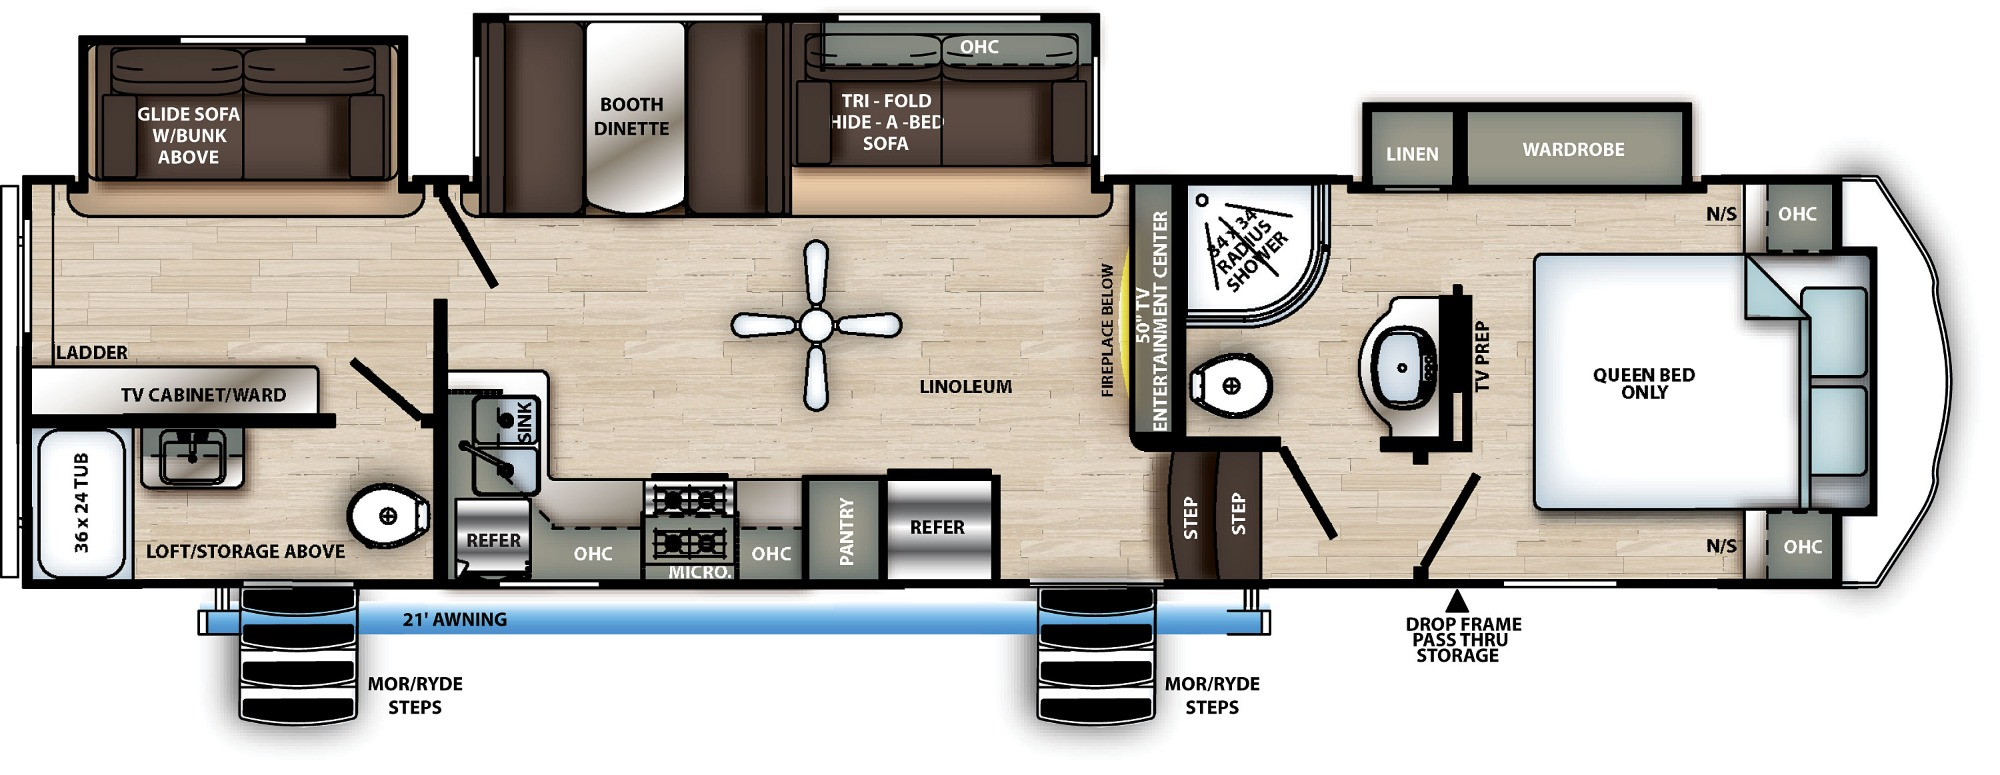 View Floor Plan for 2021 FOREST RIVER SIERRA C-CLASS 3330BH